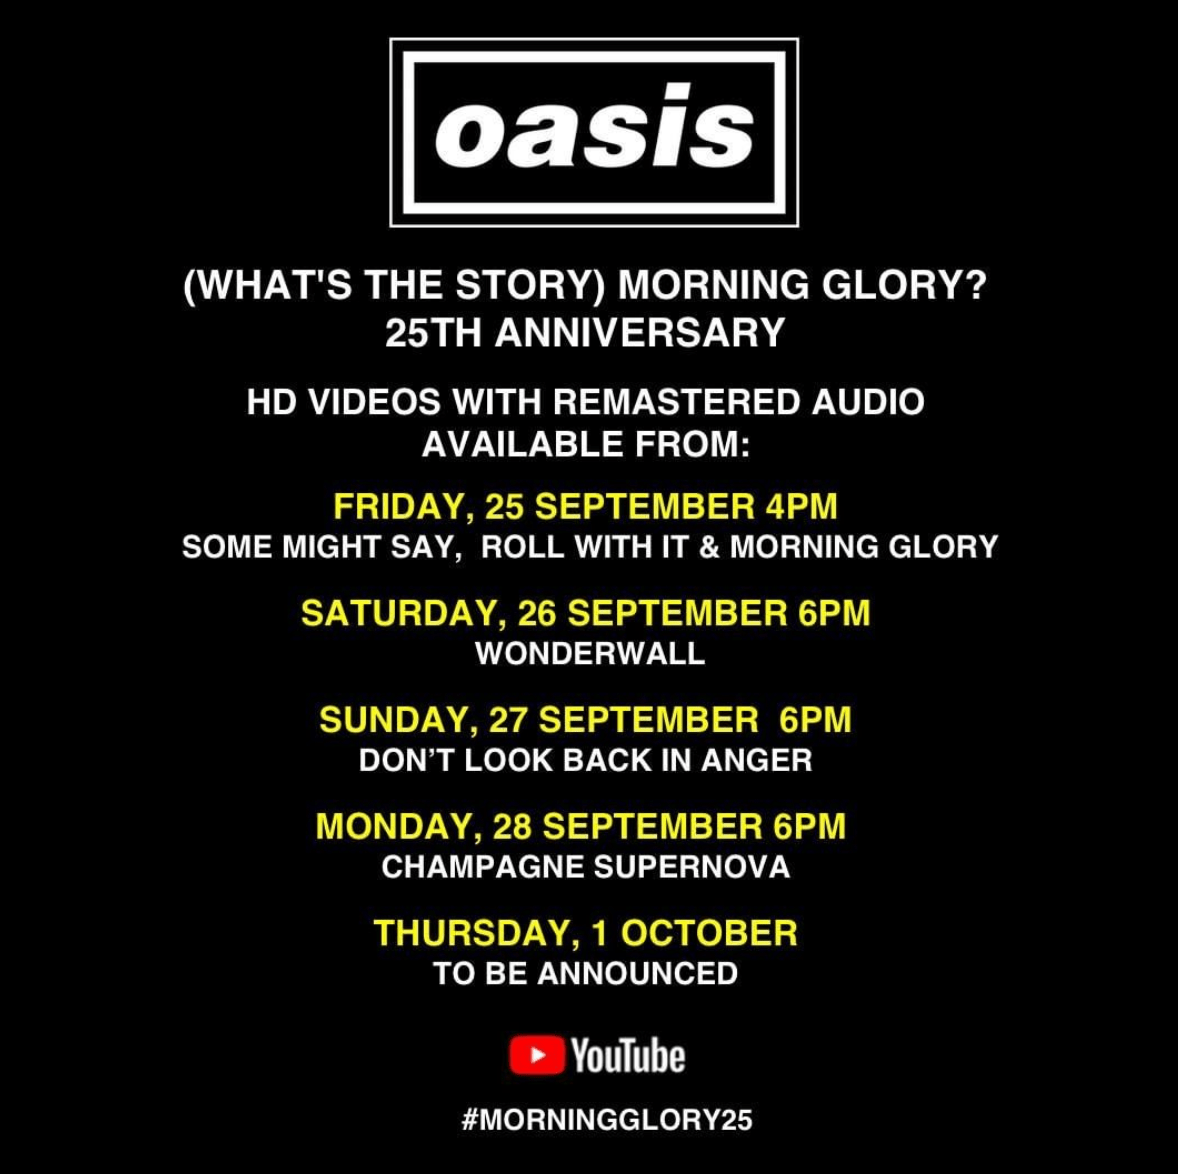 Aniversario de 'Whats the story (Morning glory)' de Oasis